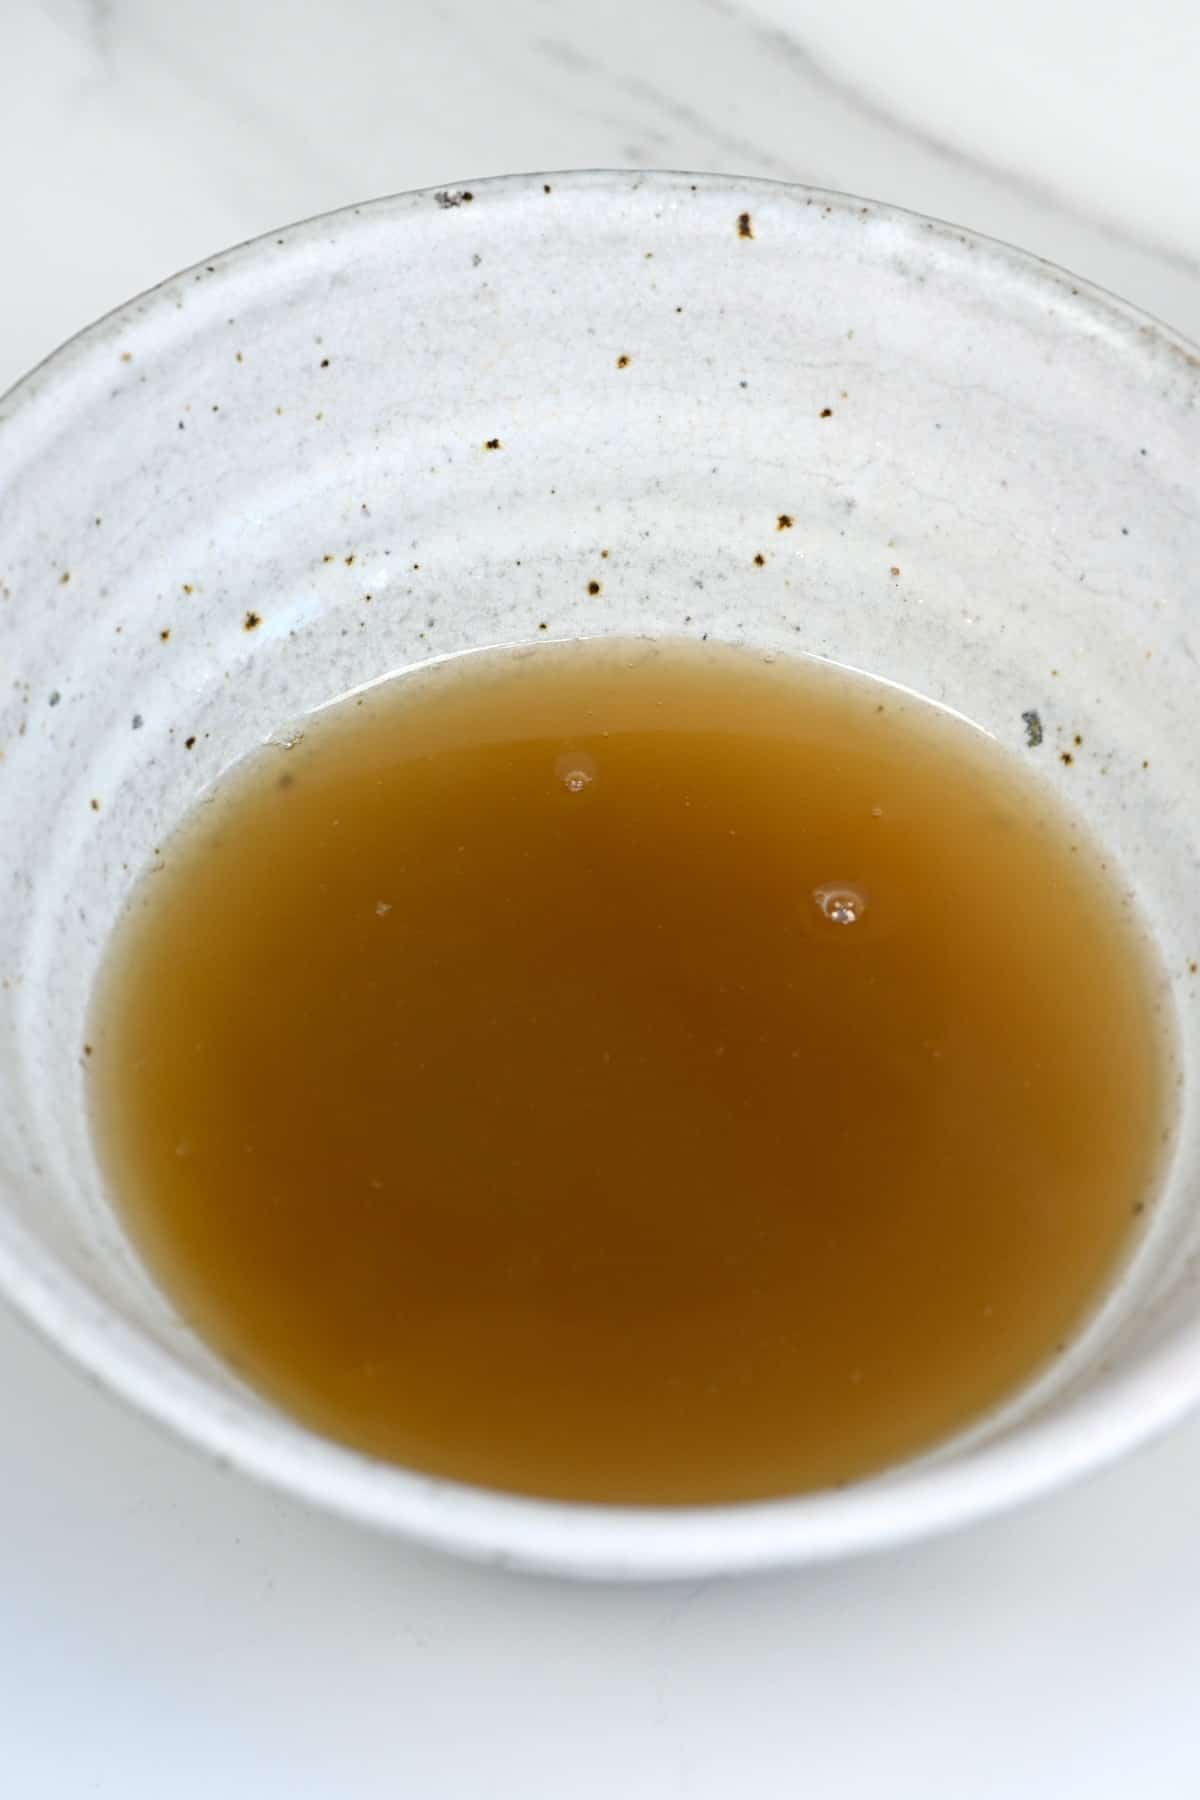 A bowl with ginger syrup